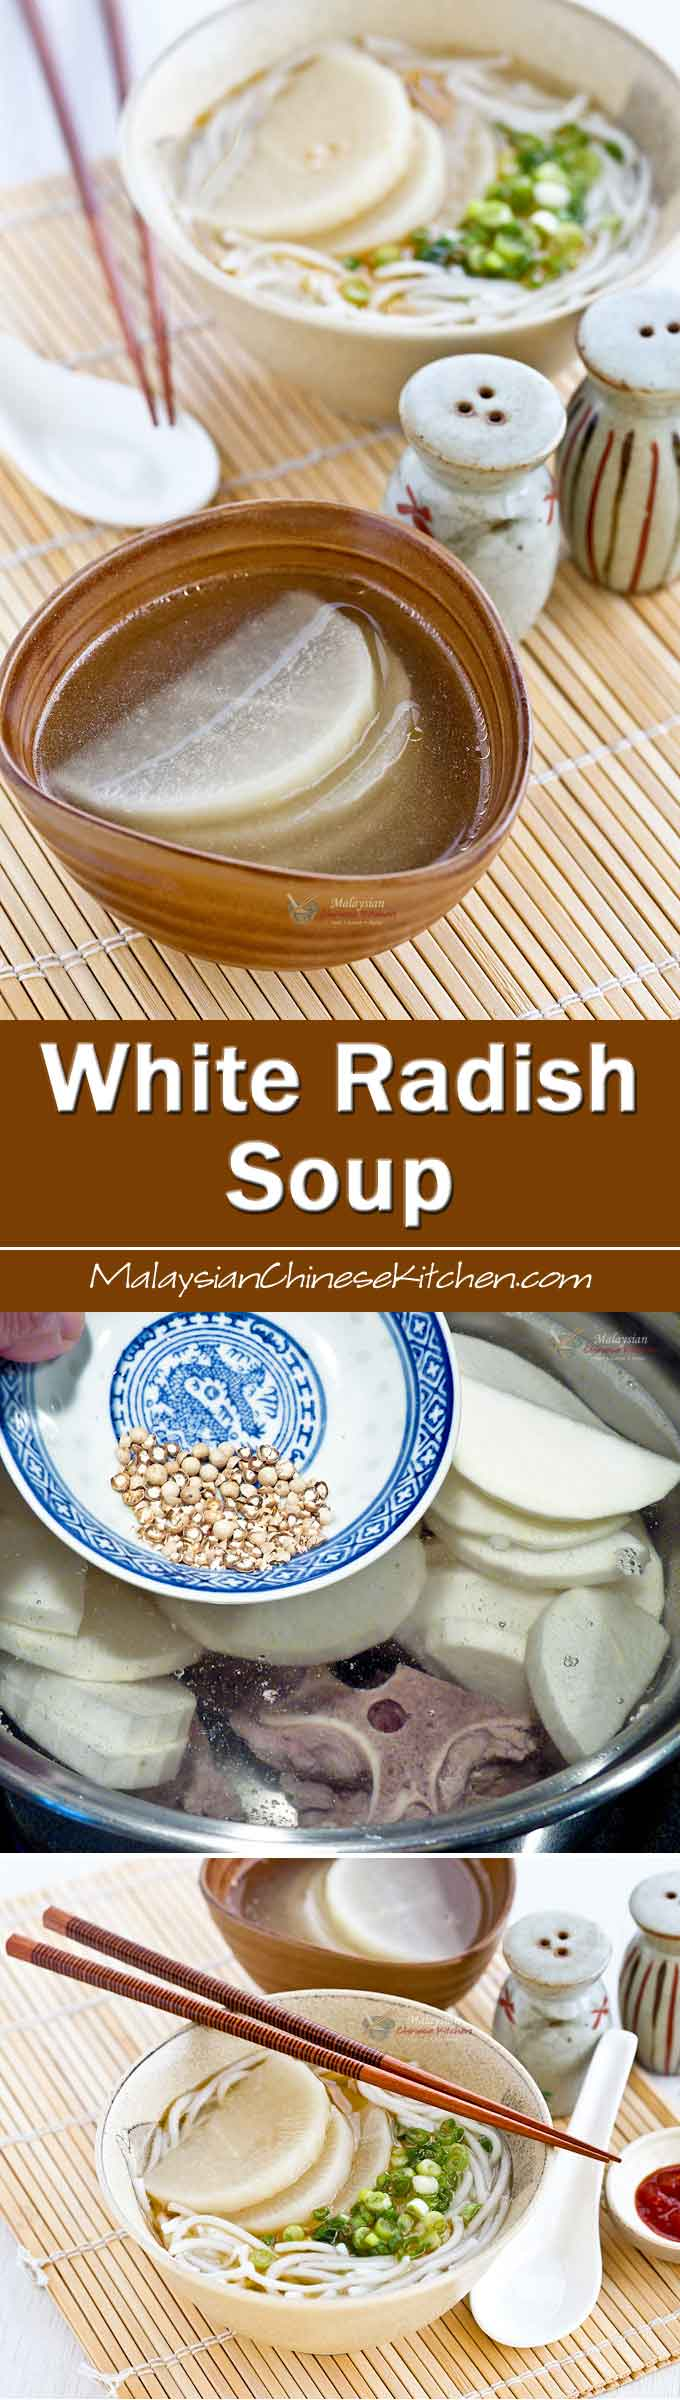 This clear peppery White Radish Soup with beef broth is soothing accompaniment to any rice meal. Also delicious served with thick rice noodles. | MalaysianChineseKitchen.com